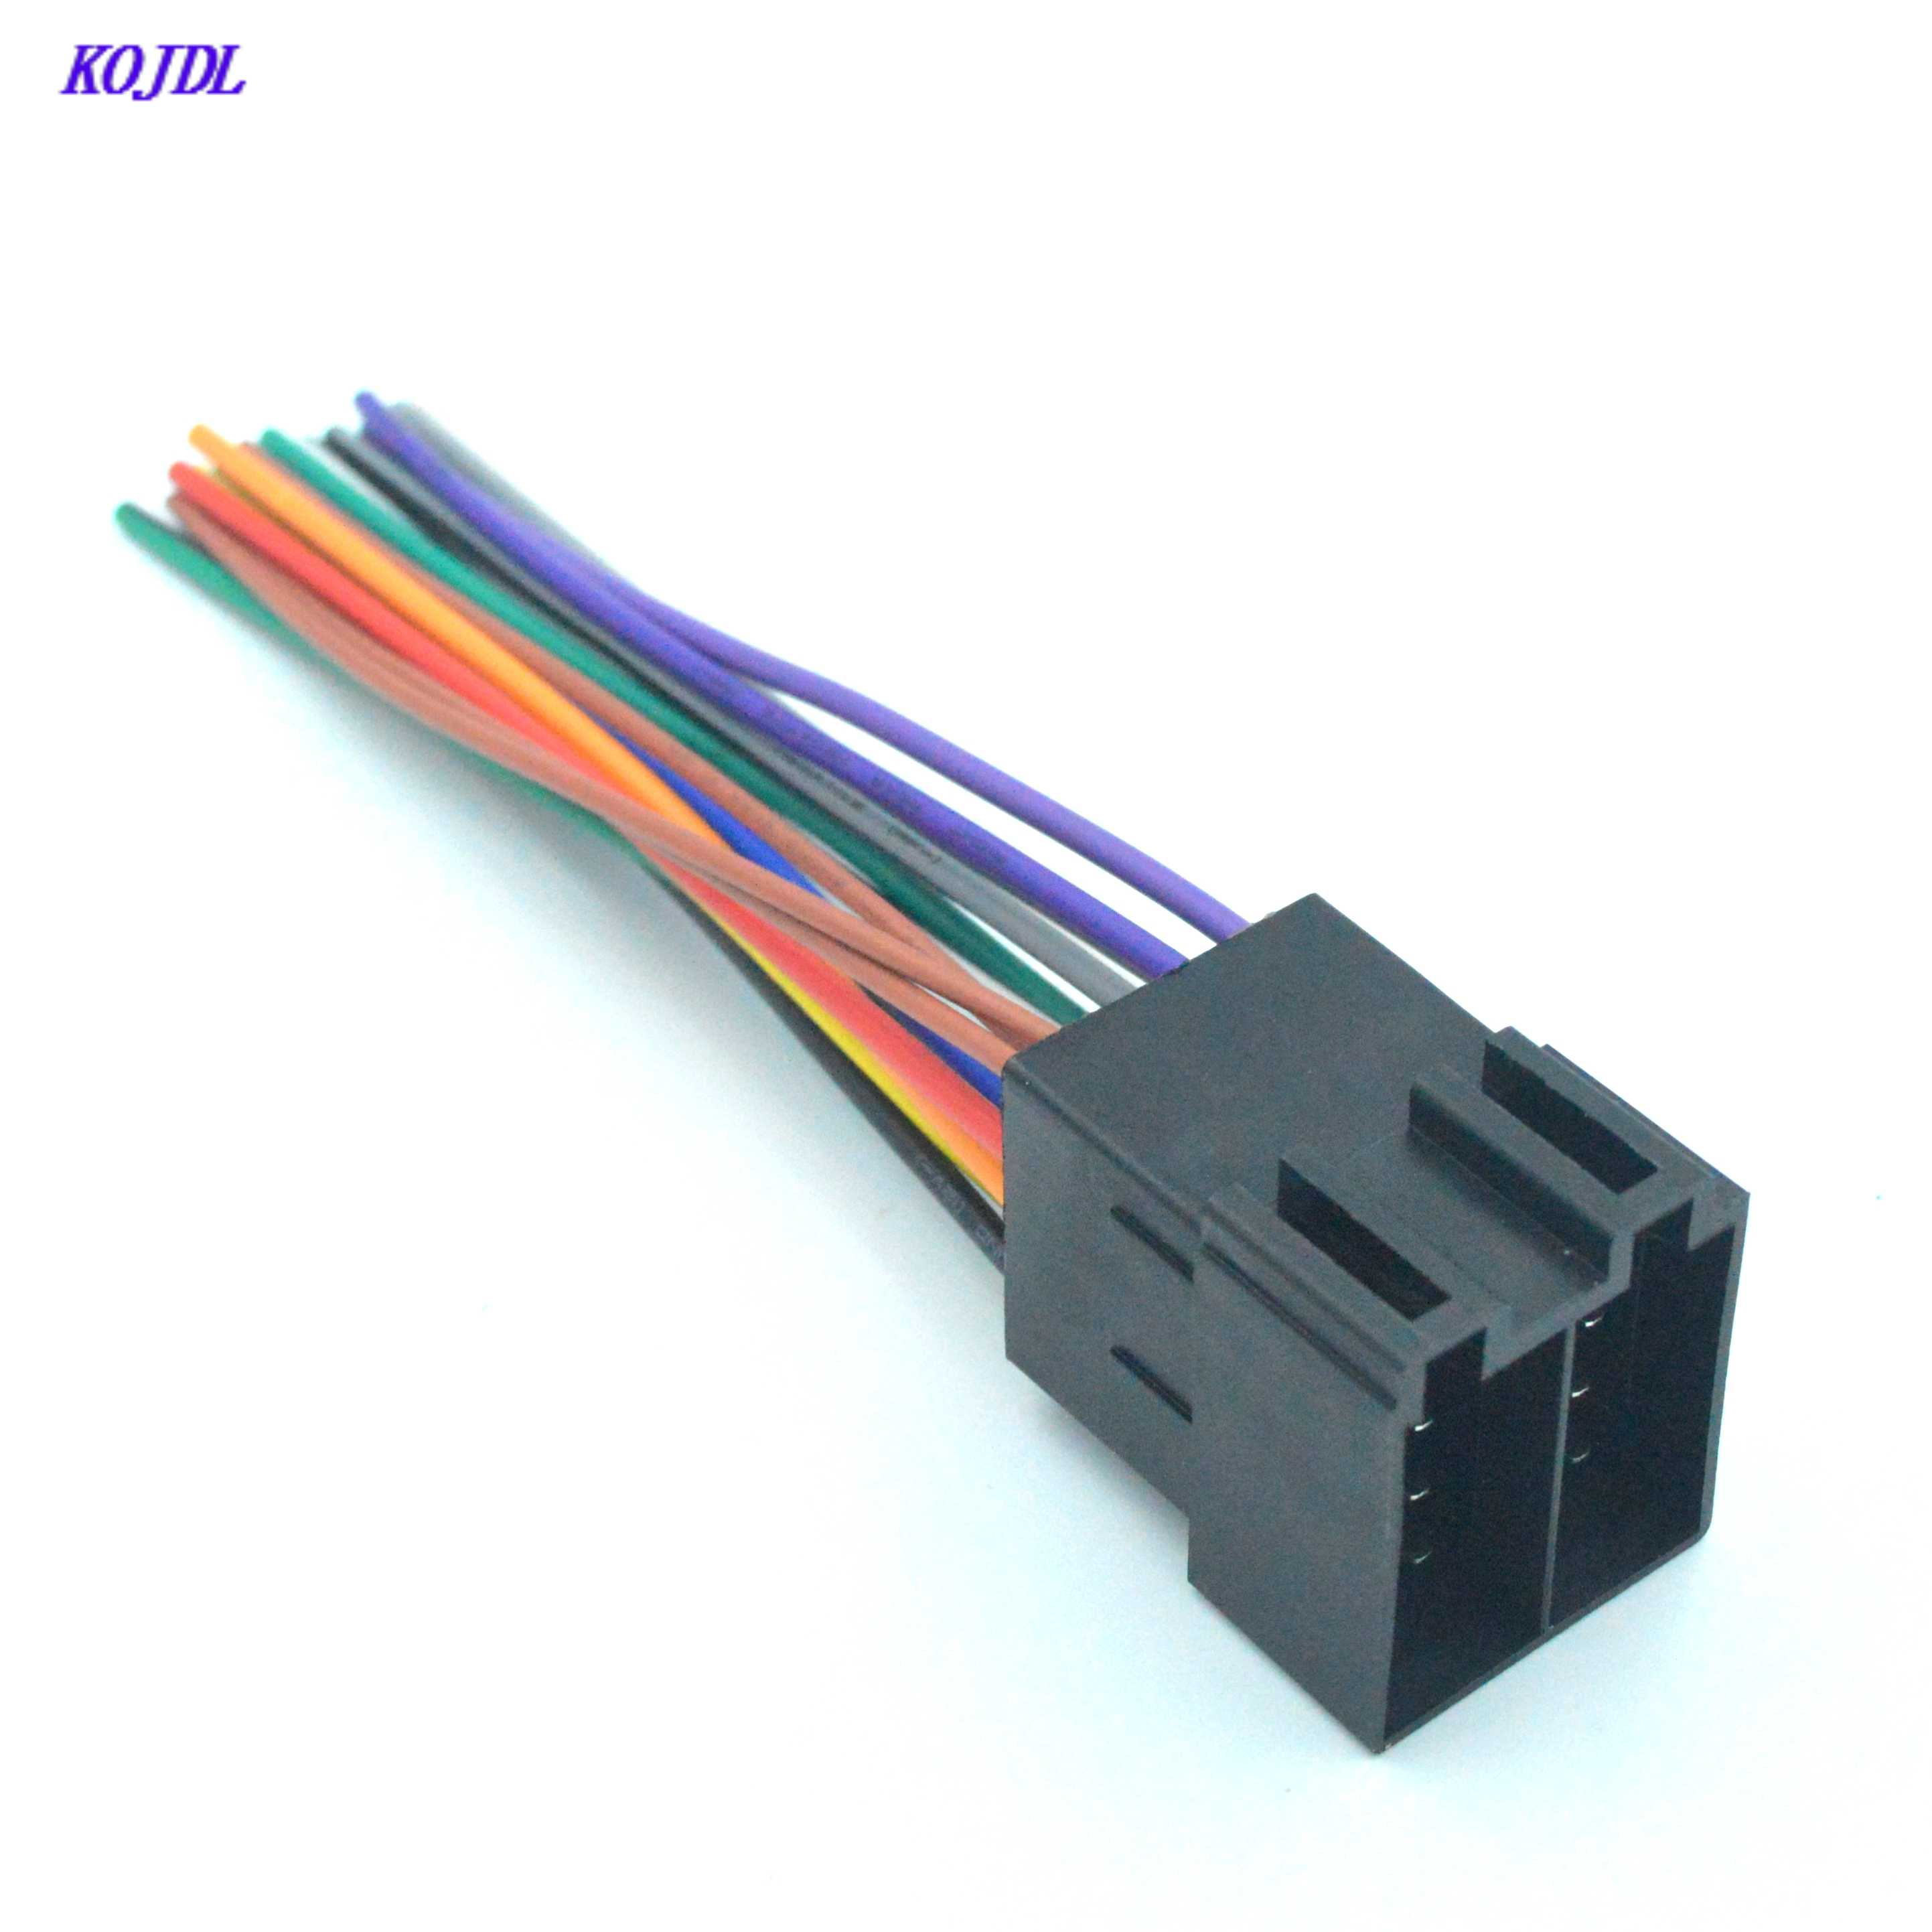 Universal Car ISO Radio Wiring Harness Cabe Adapter Connector audio Plug for Volkswagen Ford Focus Citroen Audi Mercedes KOJDL